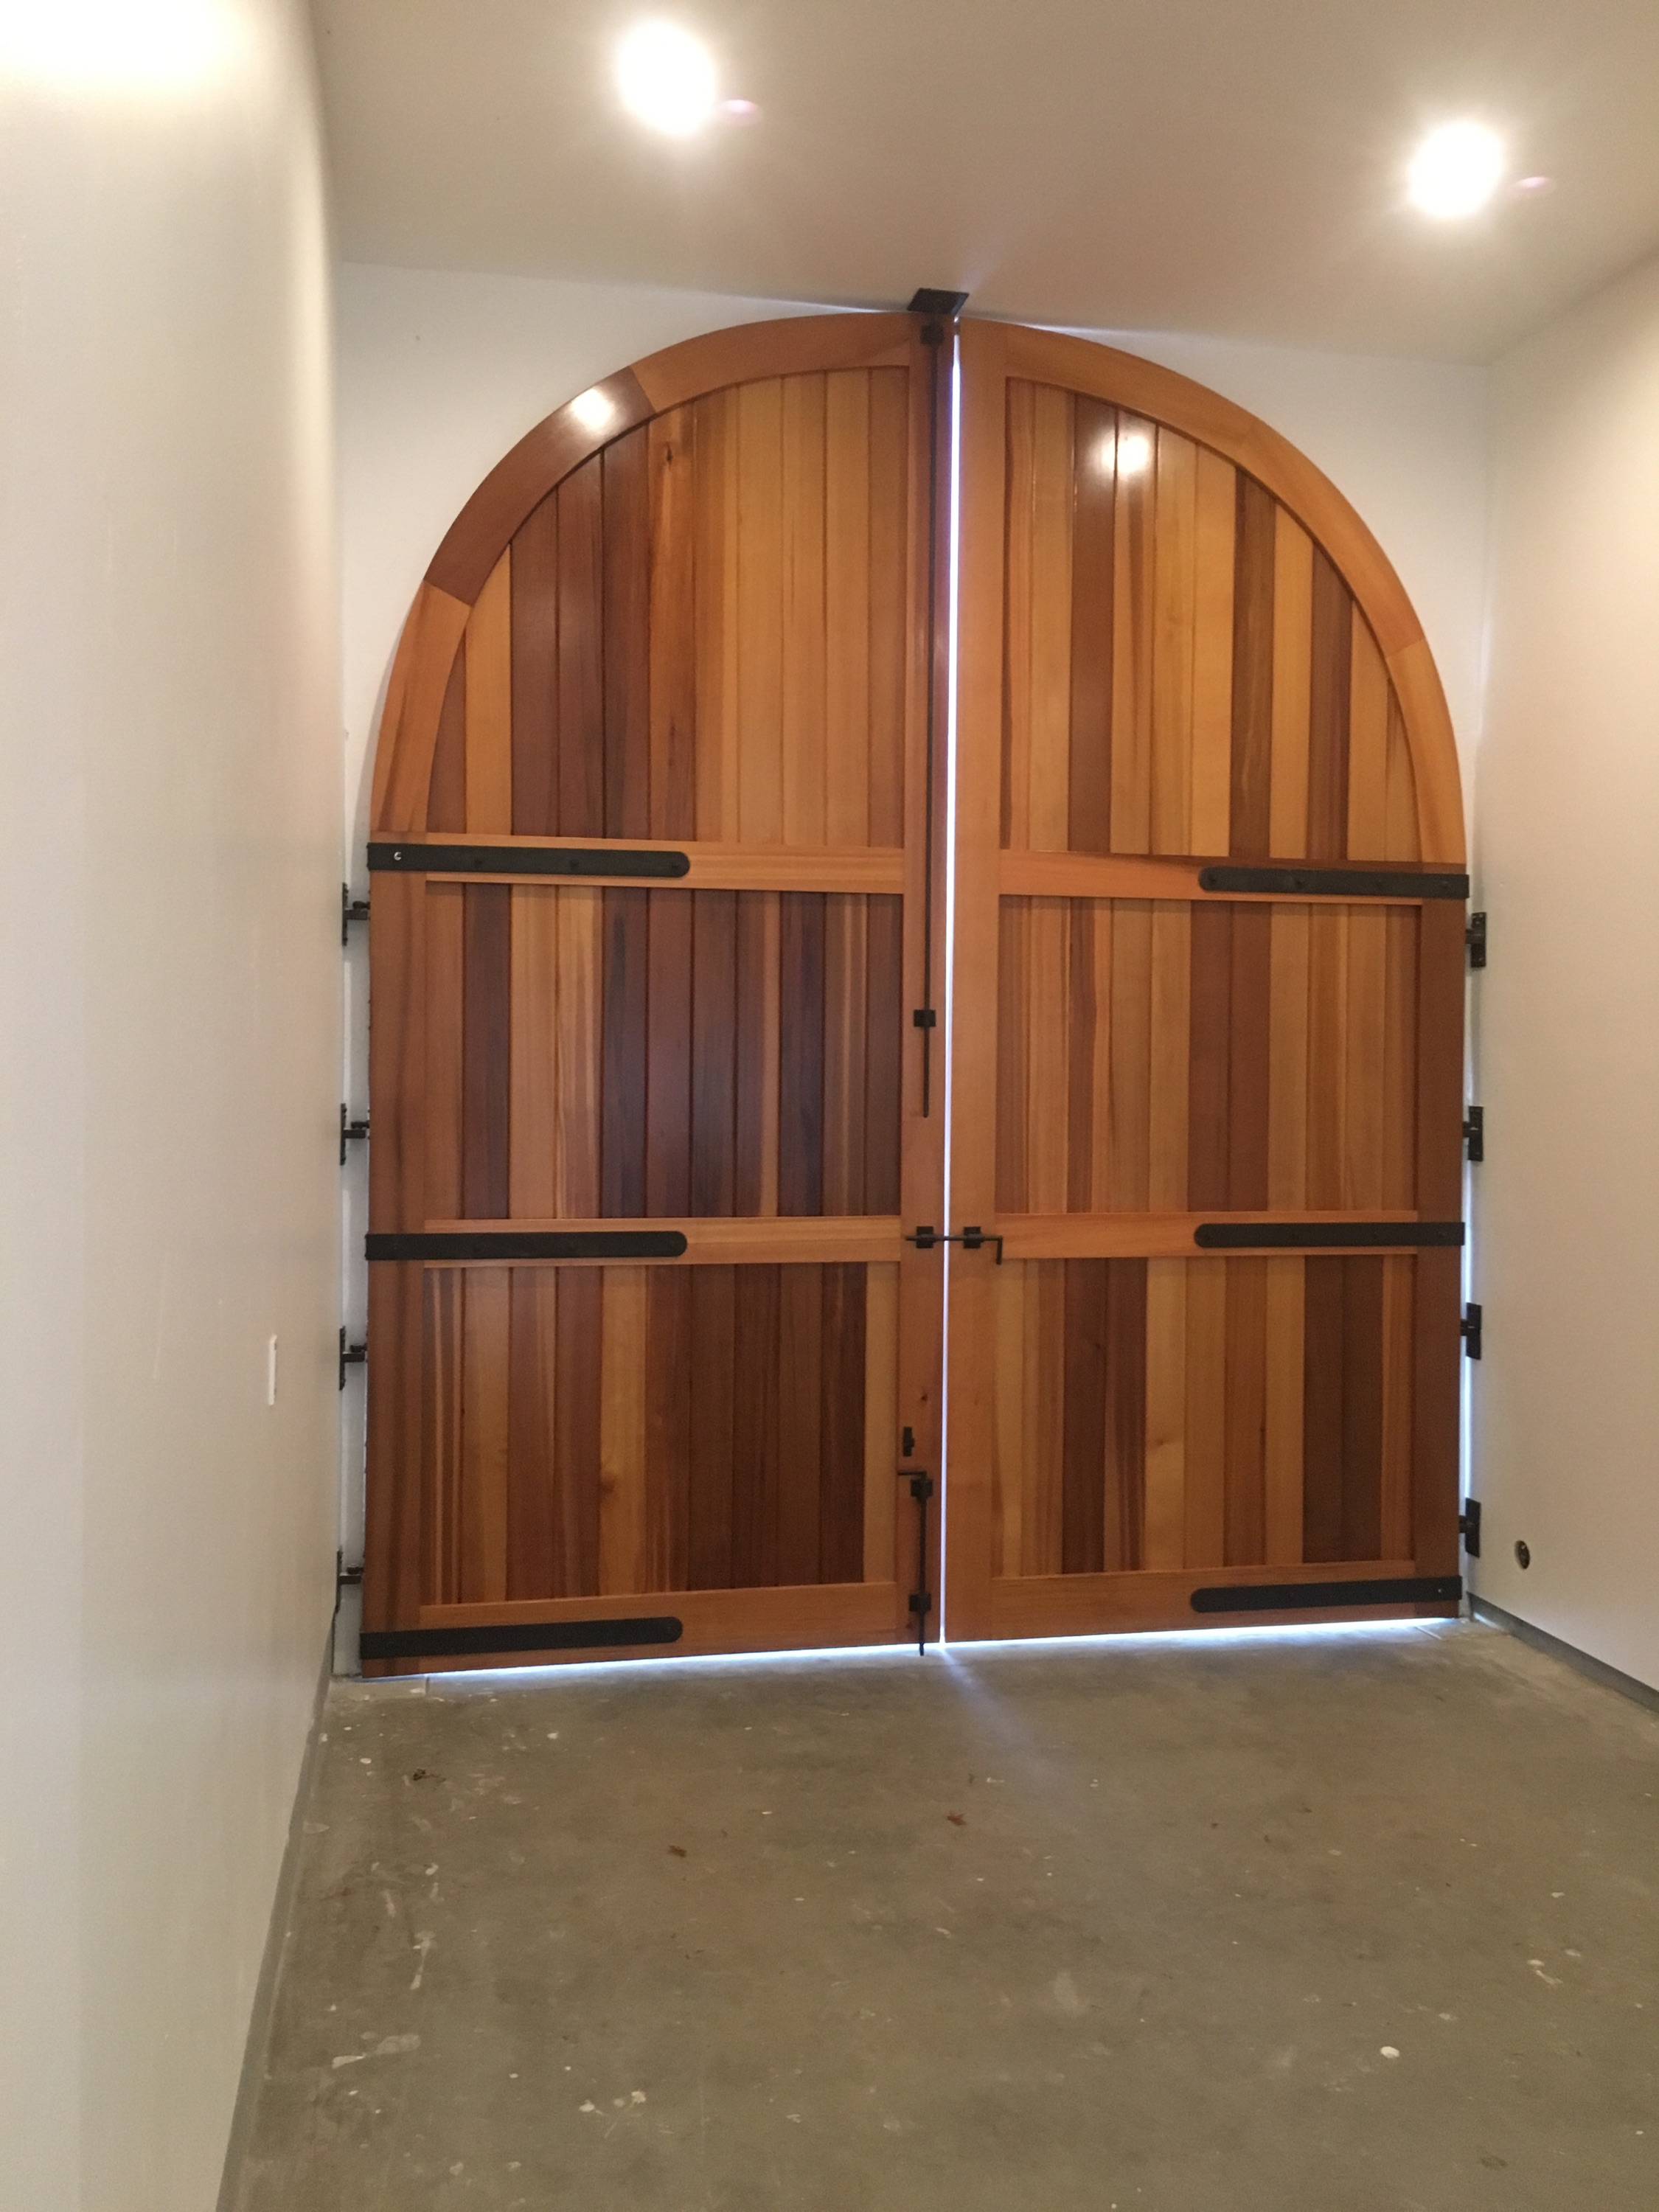 The doors from inside the garage, Shannon at Williams Gate Works really knows how to make beautiful doors. The hinges pivot off center to allow the doors to open completely flat against the interior walls.